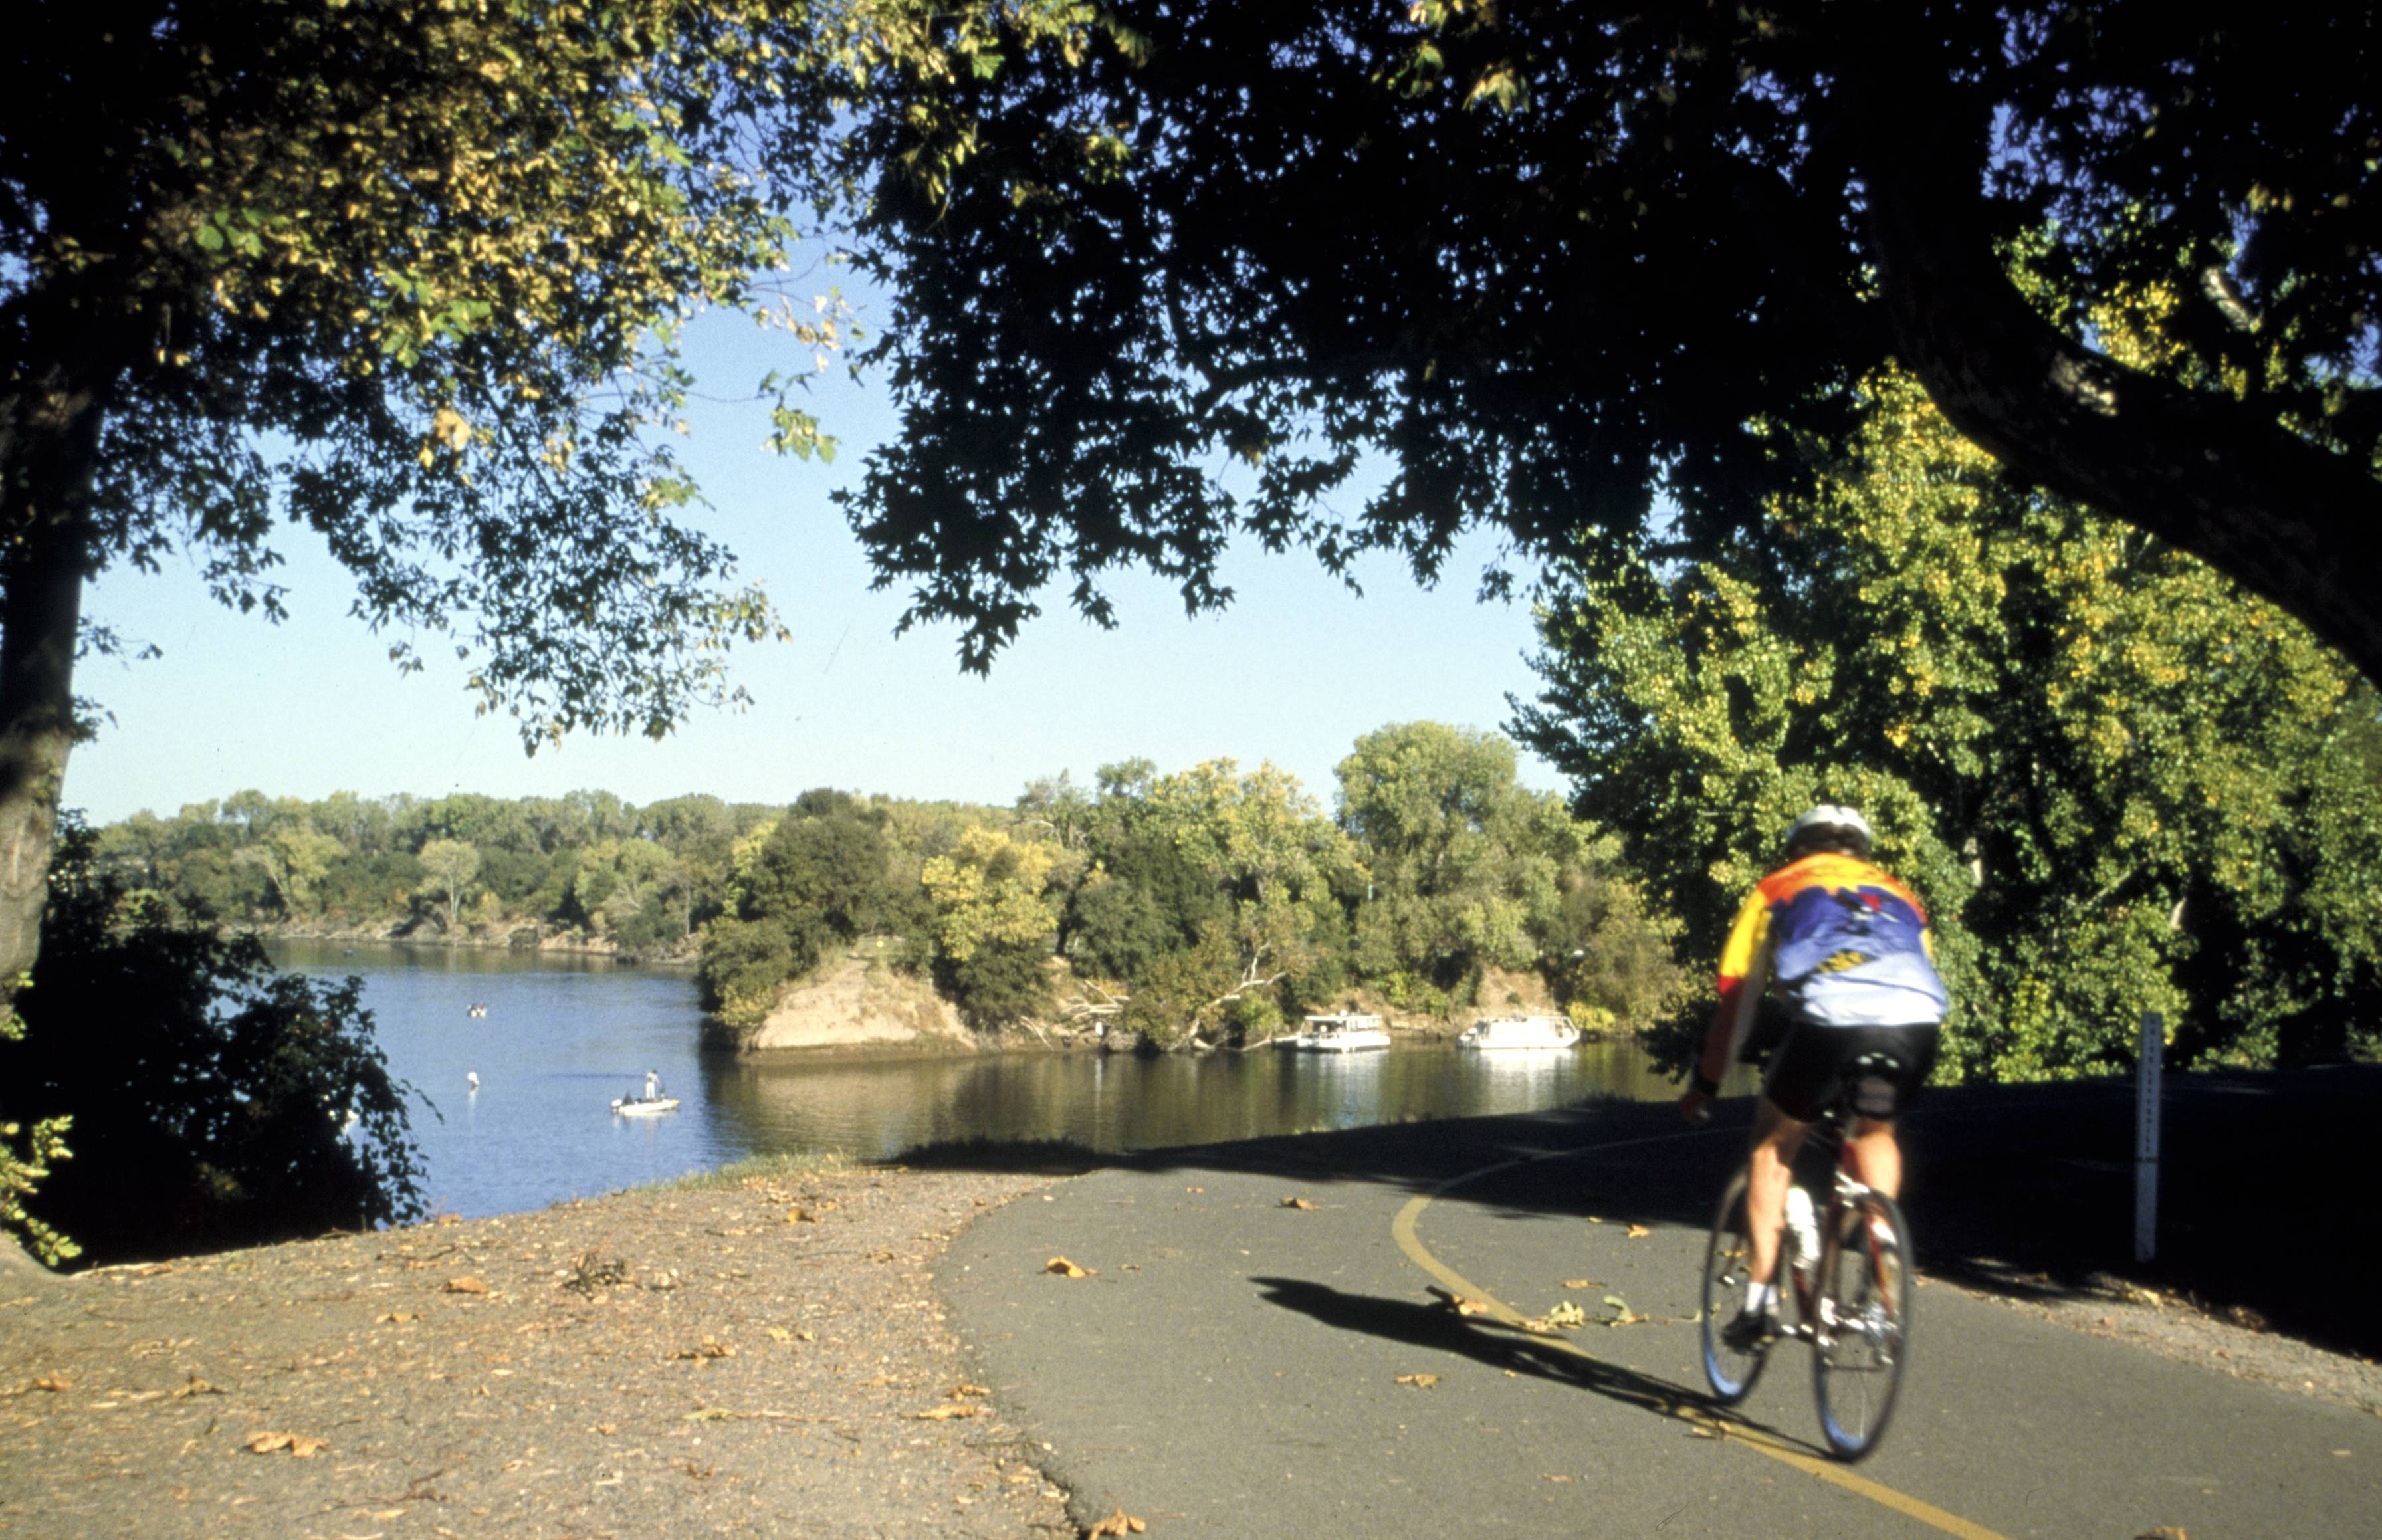 the American River Parkway in Sacramento, Calif., is great for cyclists, runners and hikers, with countless dirt trails along the river for horseback riding and mountain biking. It's one of many free things to see and do in Sacramento.